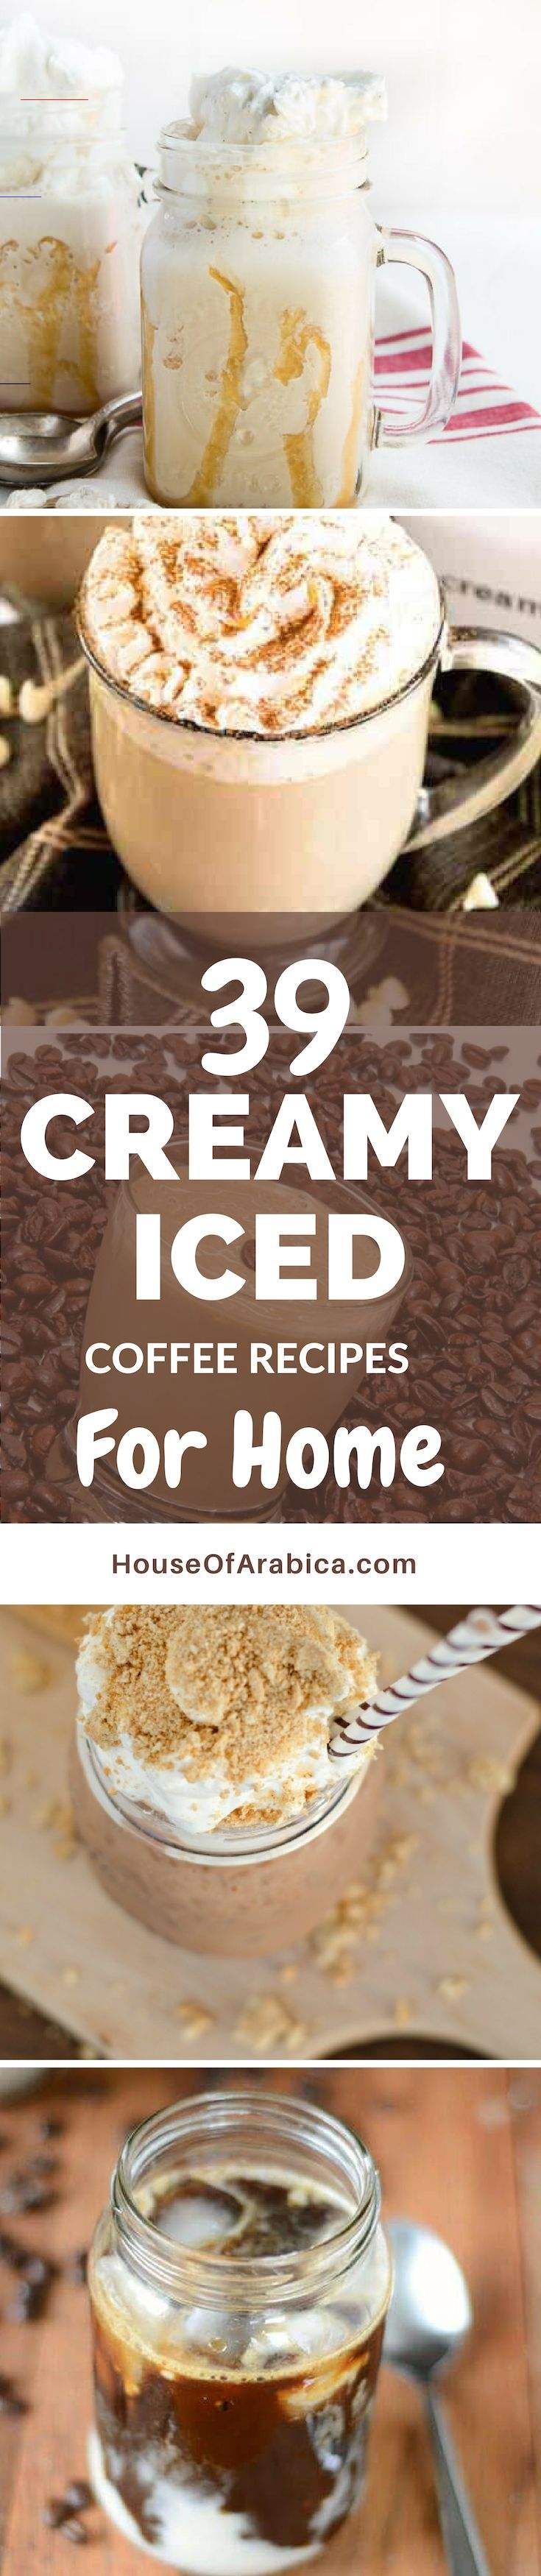 39 easy creamy iced coffee recipes for exciting summer